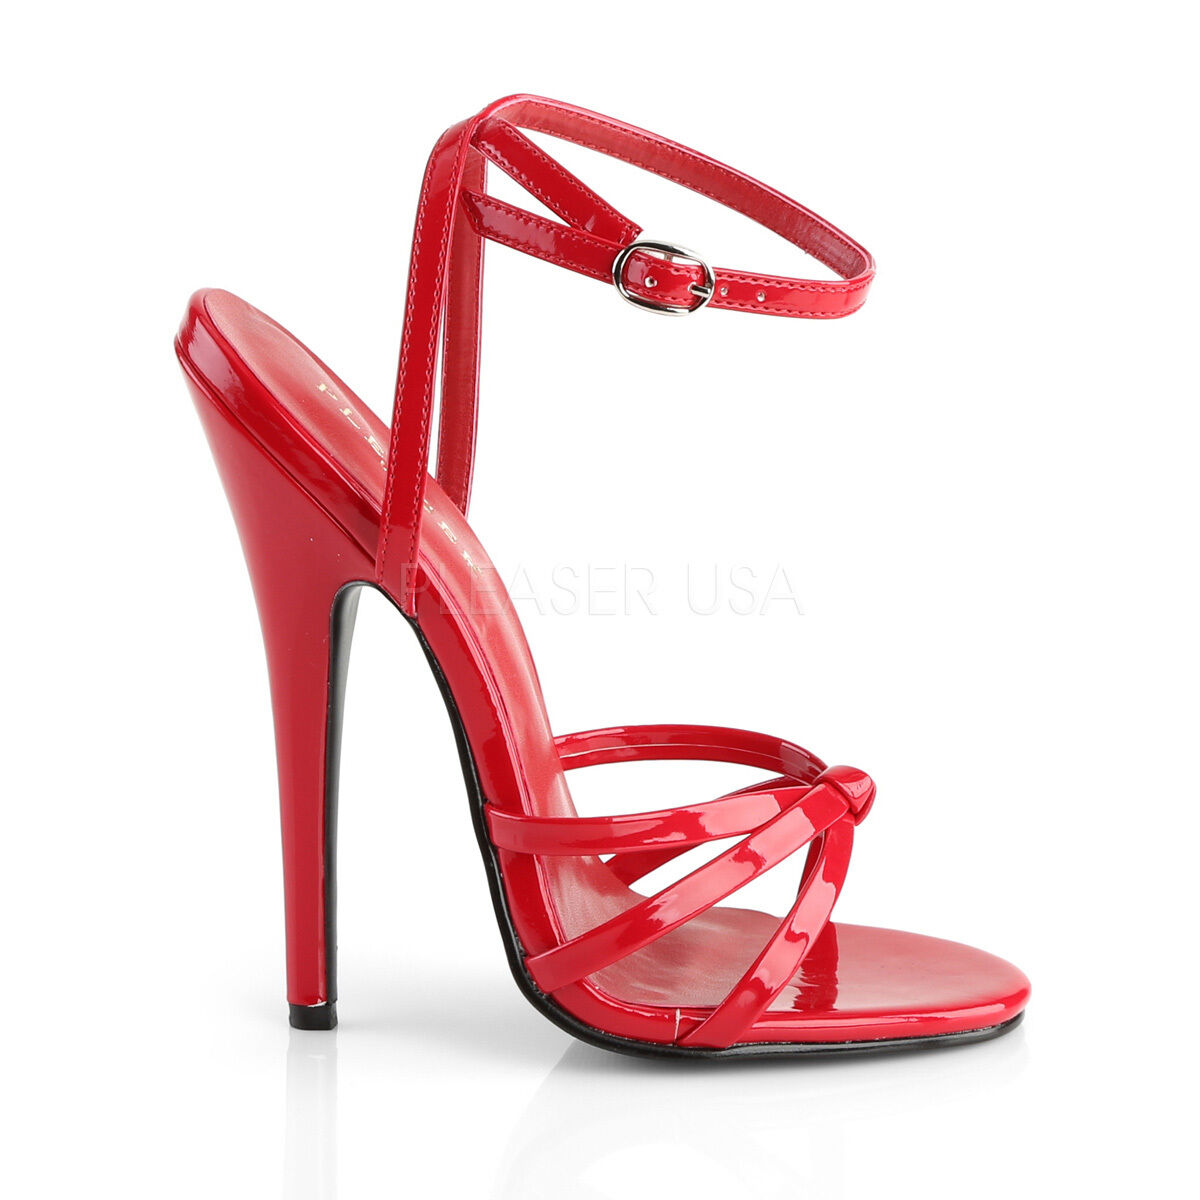 PLEASER DEVIOUS DOMINA-108 ROT PATENT STILETTO HEEL HEEL HEEL SANDALS 756ea6